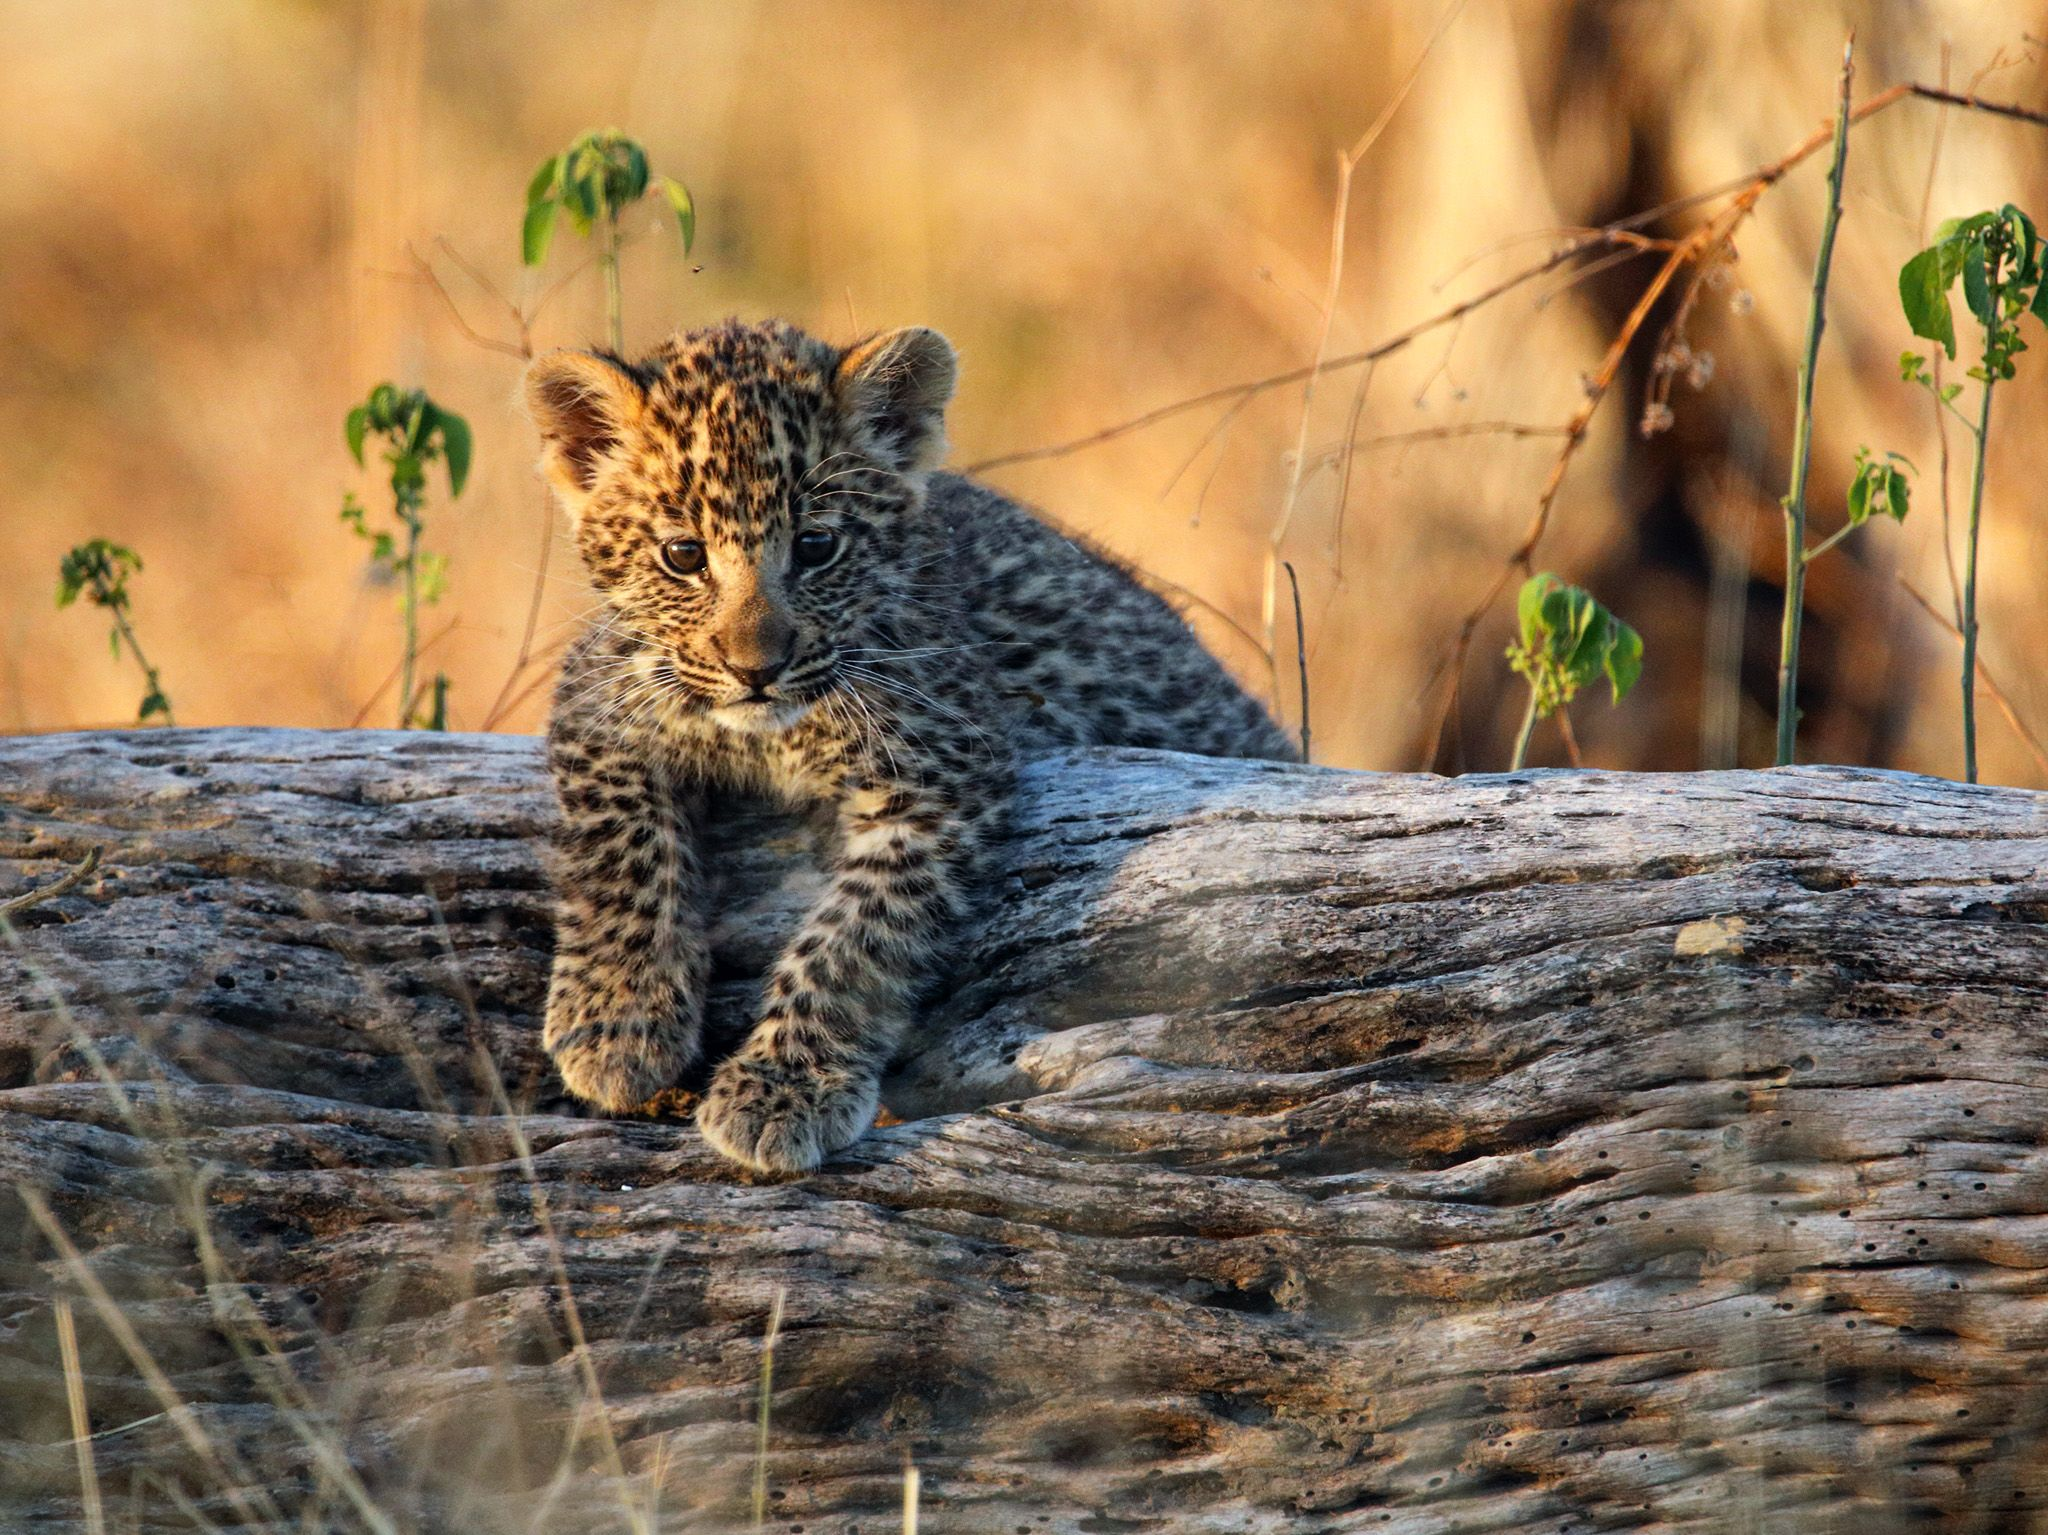 Botswana:  A young Leopard cub lies spread out on its den site; a fallen hollow tree. This image... [Foto del giorno - November 2018]